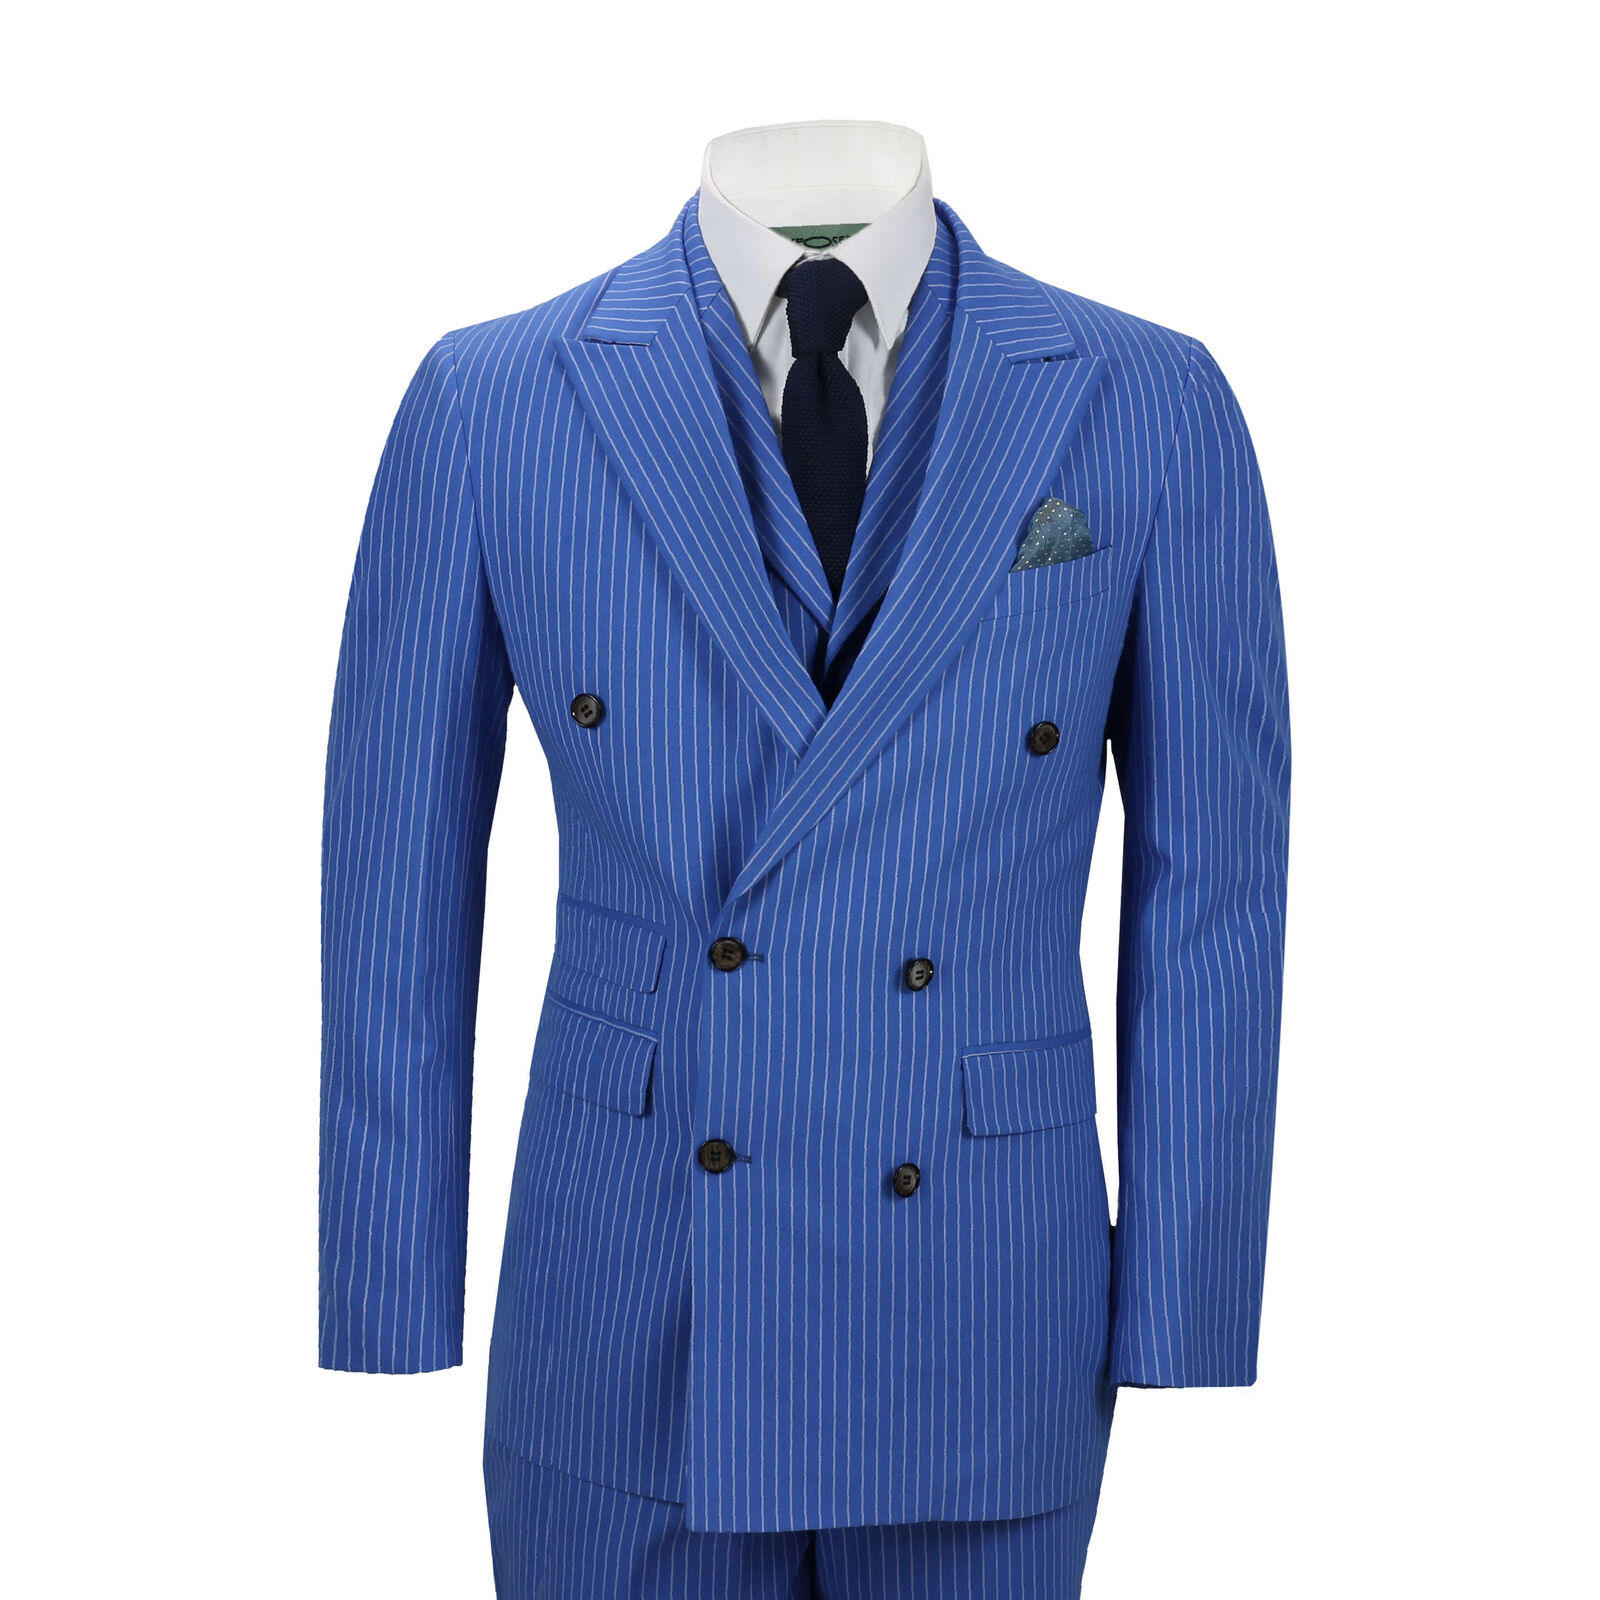 Herren 3 Piece Double Breasted Pencil Pin Stripe Suit Royal Blau Classic Retro Fit